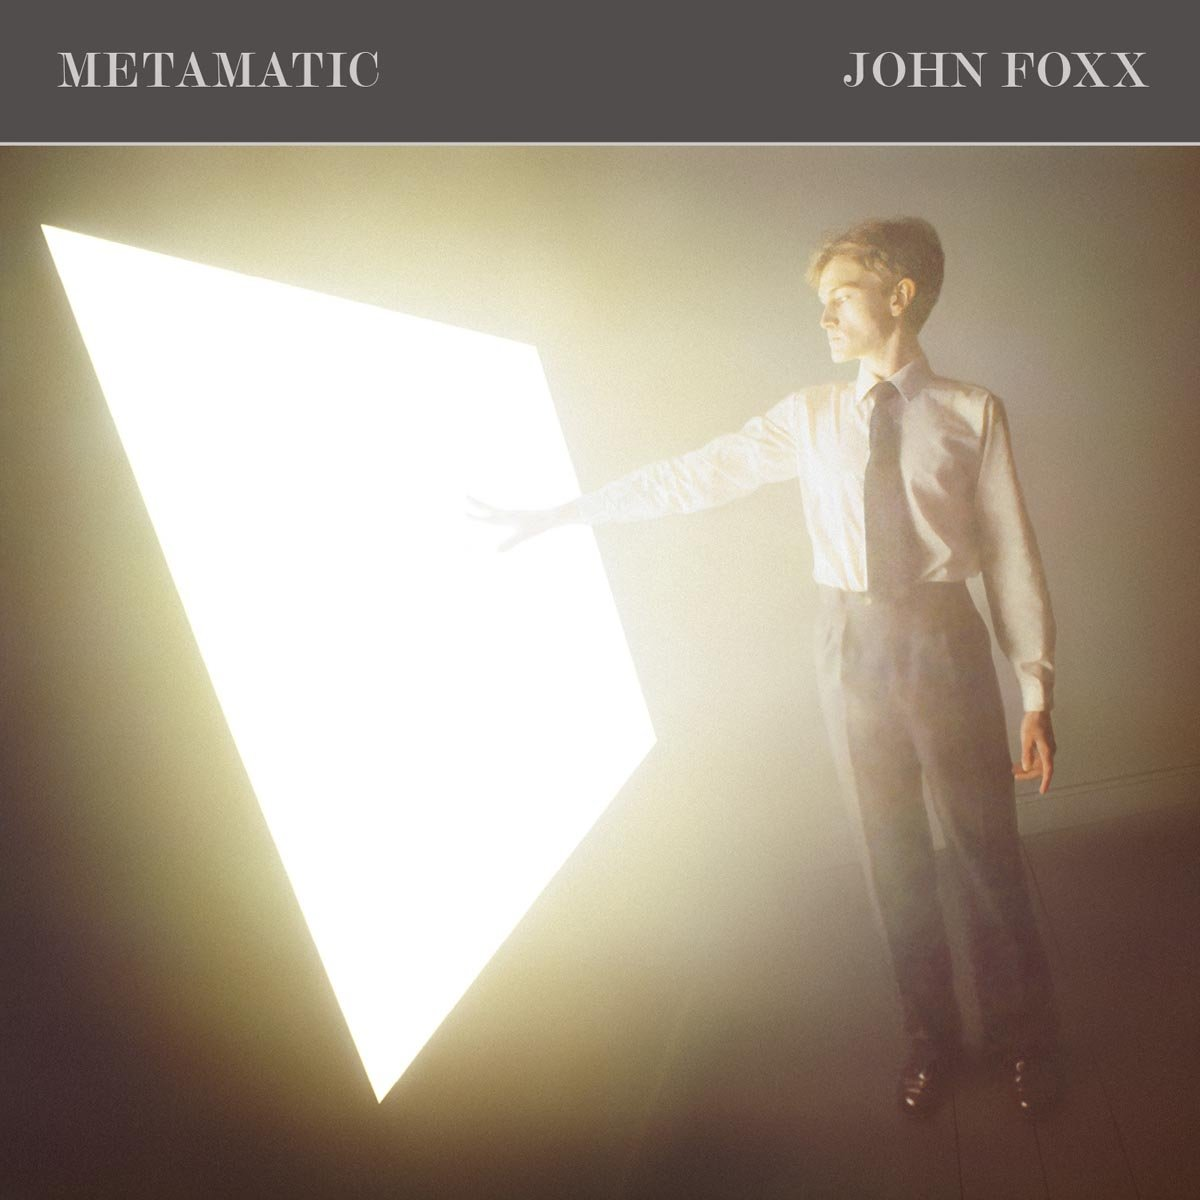 NEWS On this day, 40 ago, John Foxx released his first solo project album Metamatic!